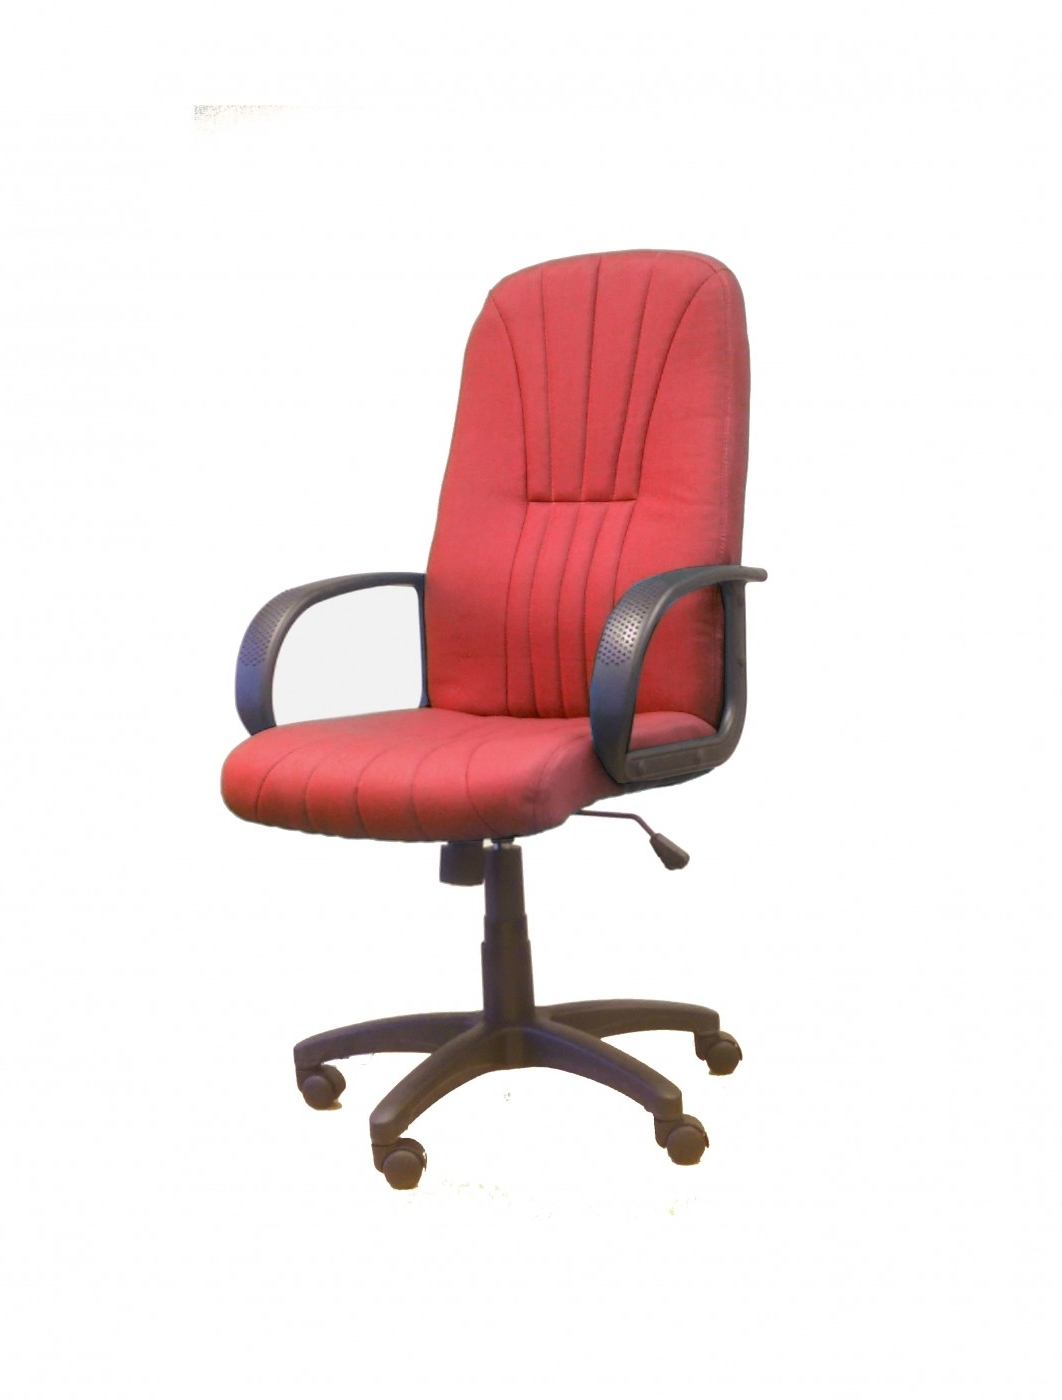 Pluto Fabric High Back Executive Office Chair Bcf/s (View 15 of 20)